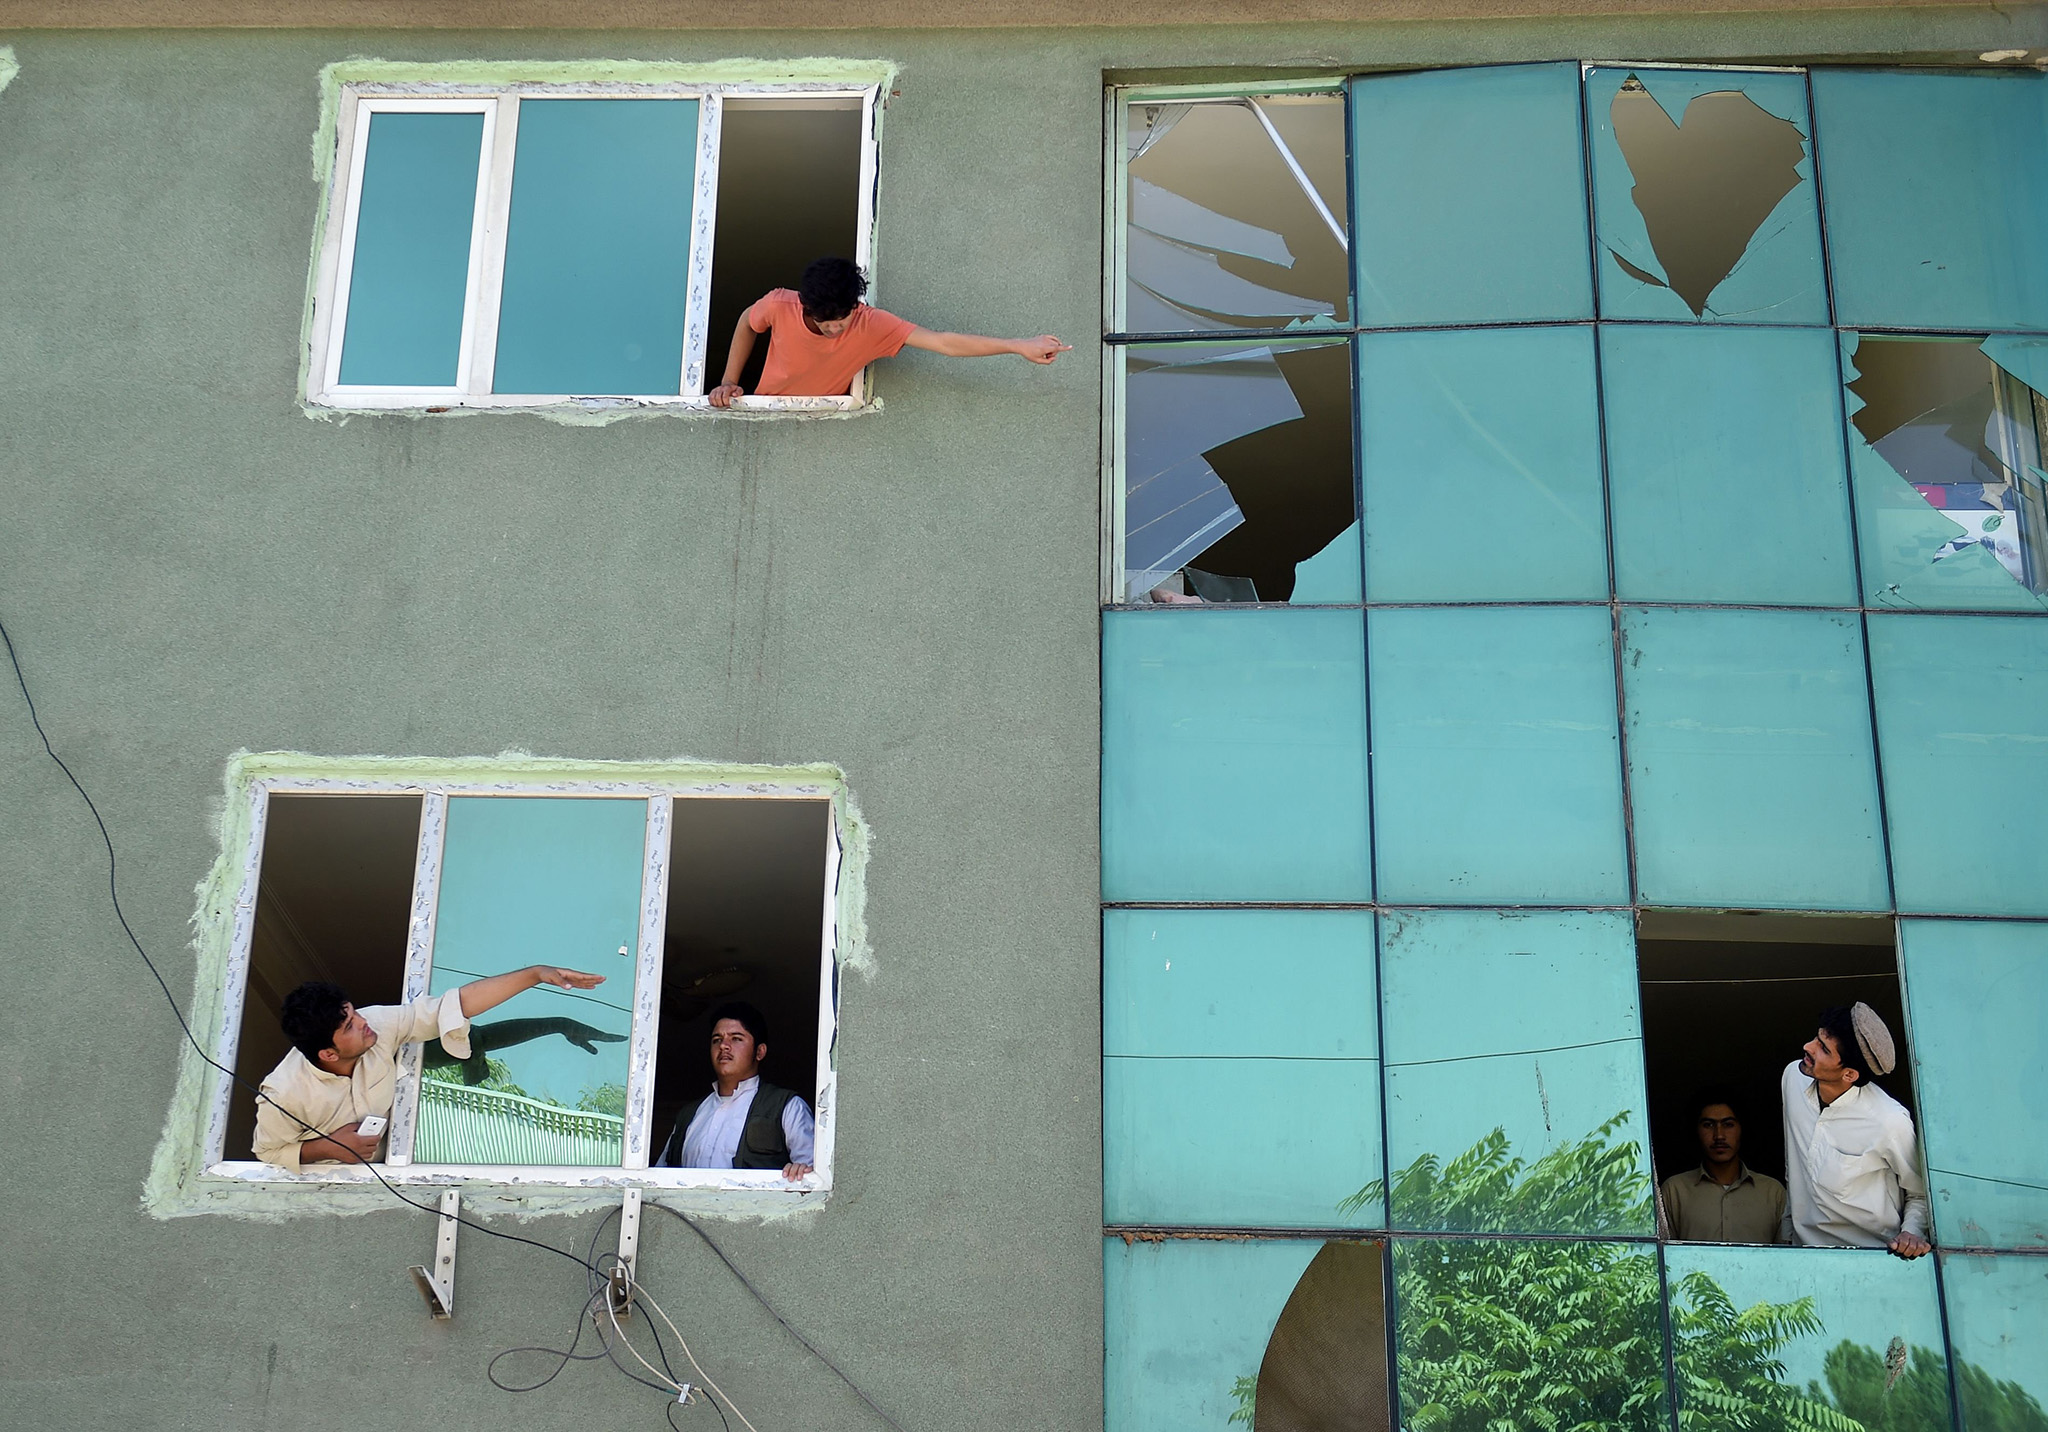 Afghan residents look out from broken windows of a building near the site of an attack following a car bomb blast that targeted the CARE International compound at Shar-e-Naw in Kabul